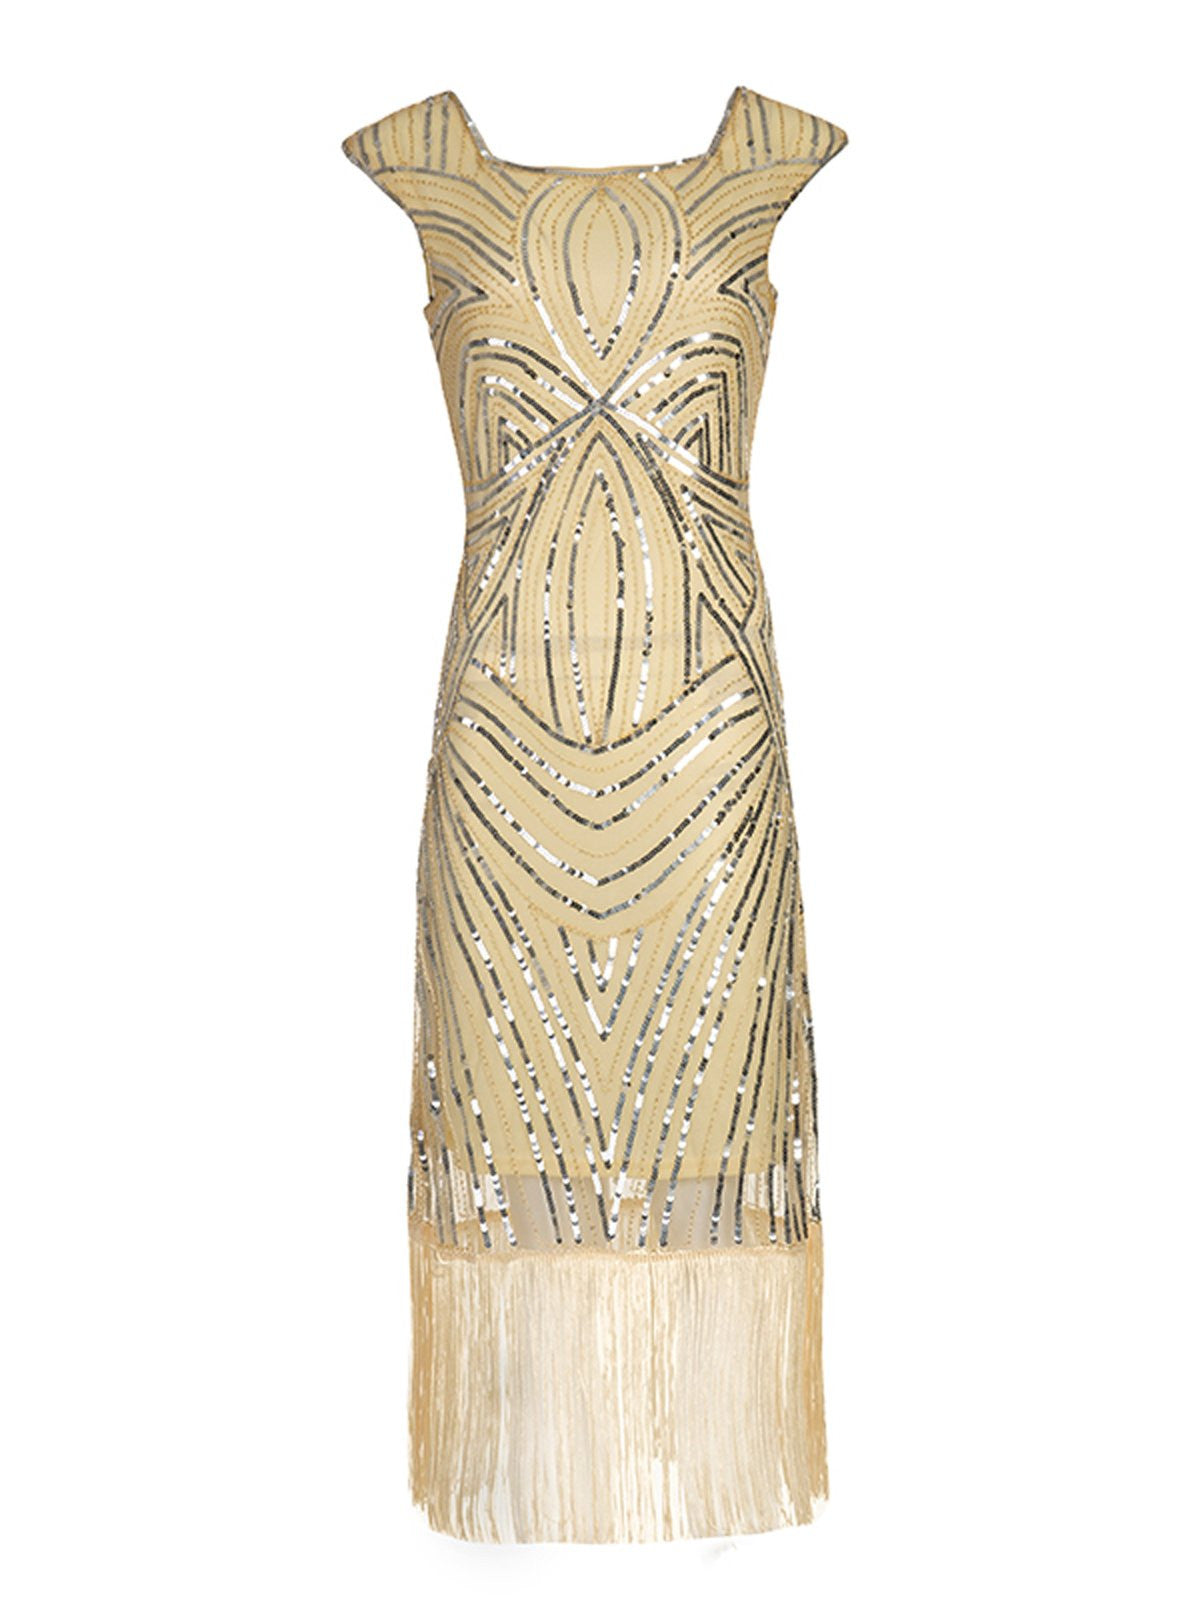 8381c067a 1920s Sequin Flapper Gatsby Dress - Retro Stage - Chic Vintage ...